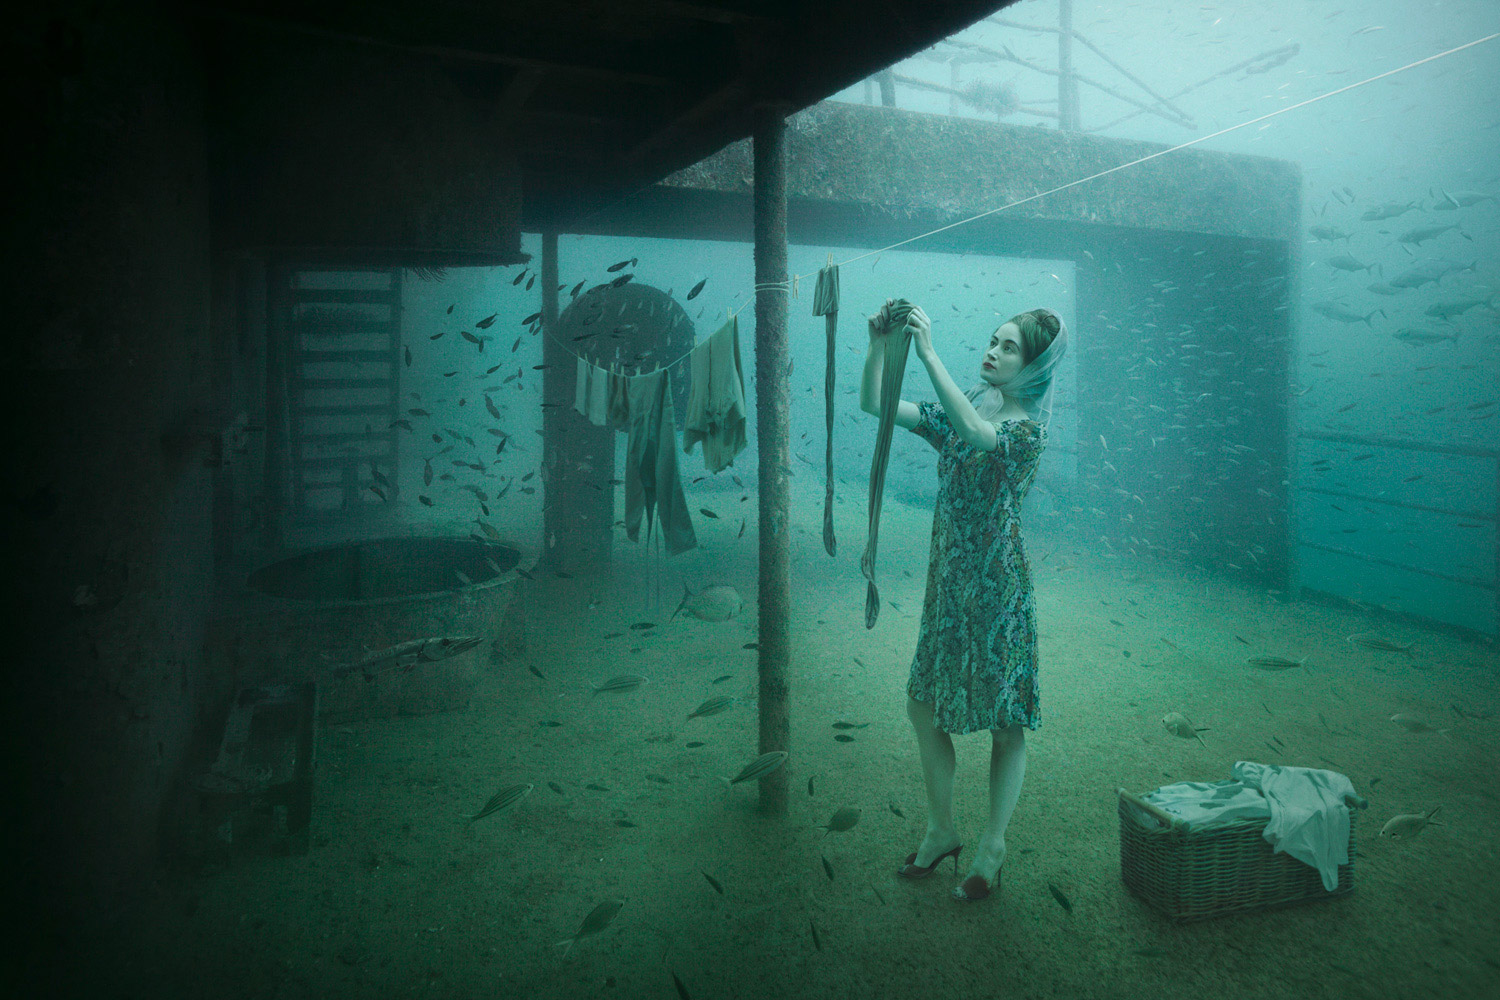 Andreas Franke - The Sinking World, laundry